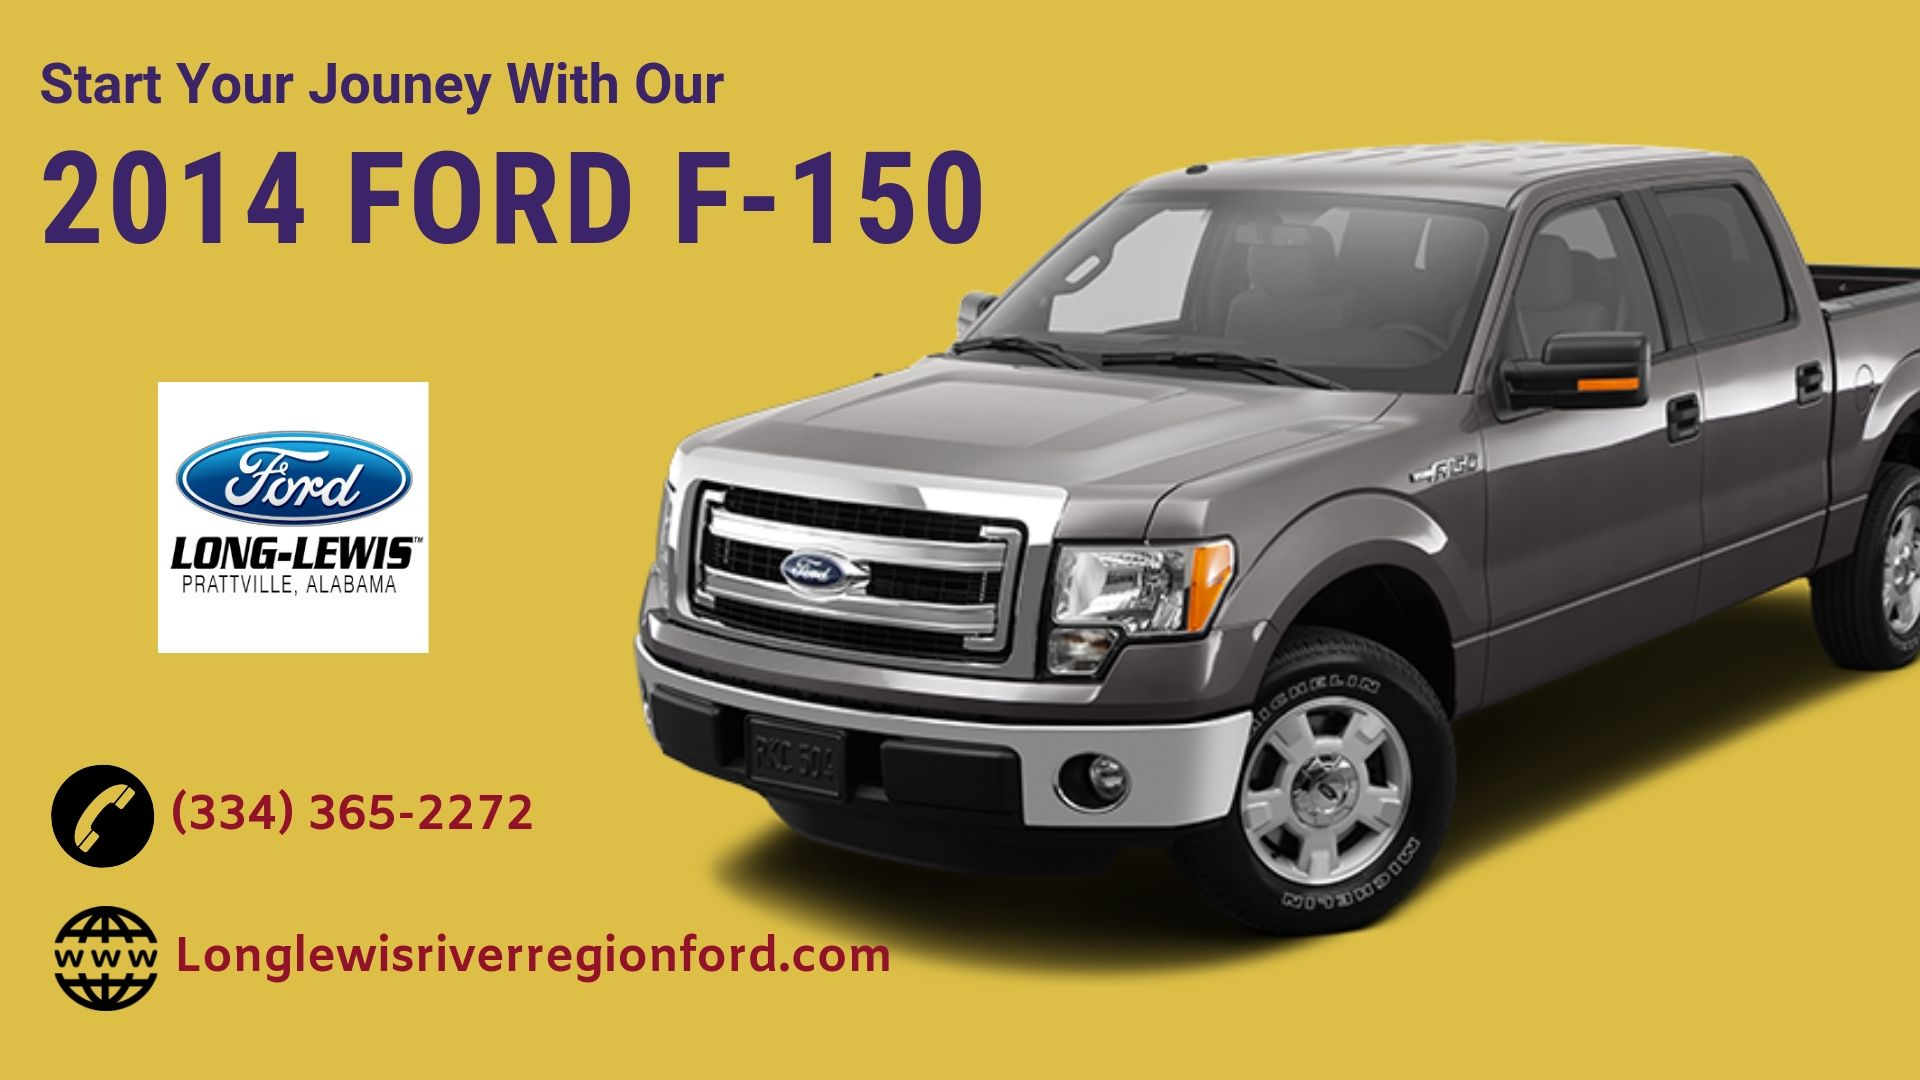 Do You Want To Buy The Best 2014 Ford F 150 Our Long Lewis Of The River Region Selling The Most Technologically Advanced Reliable A Ford F150 Ford Dealership